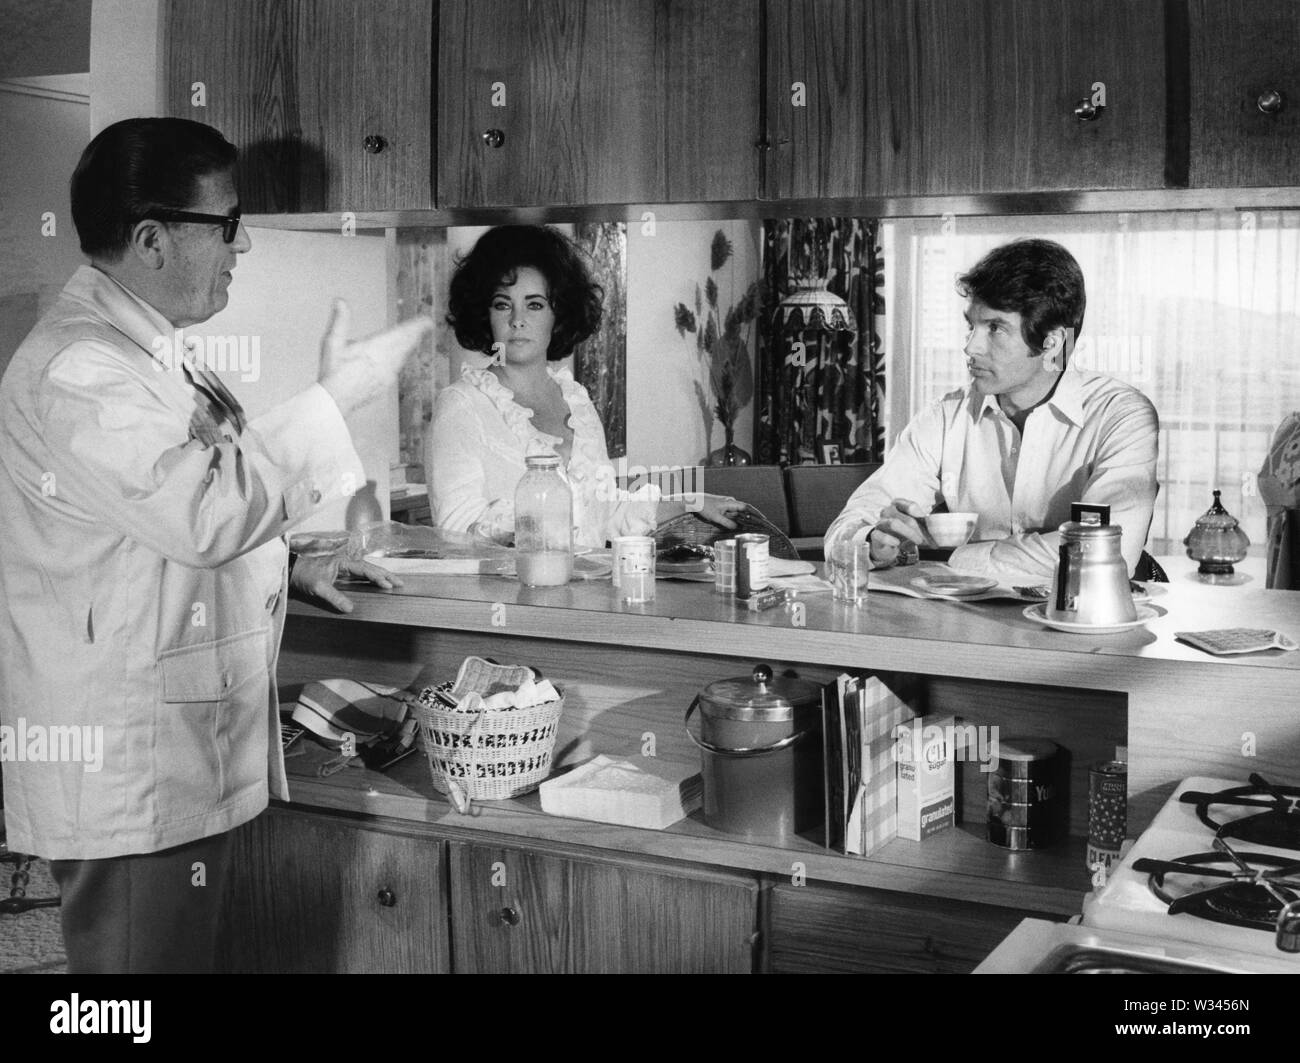 WARREN BEATTY , GEORGE STEVENS and ELIZABETH TAYLOR in THE ONLY GAME IN TOWN (1970). Credit: 20TH CENTURY FOX / Album - Stock Image